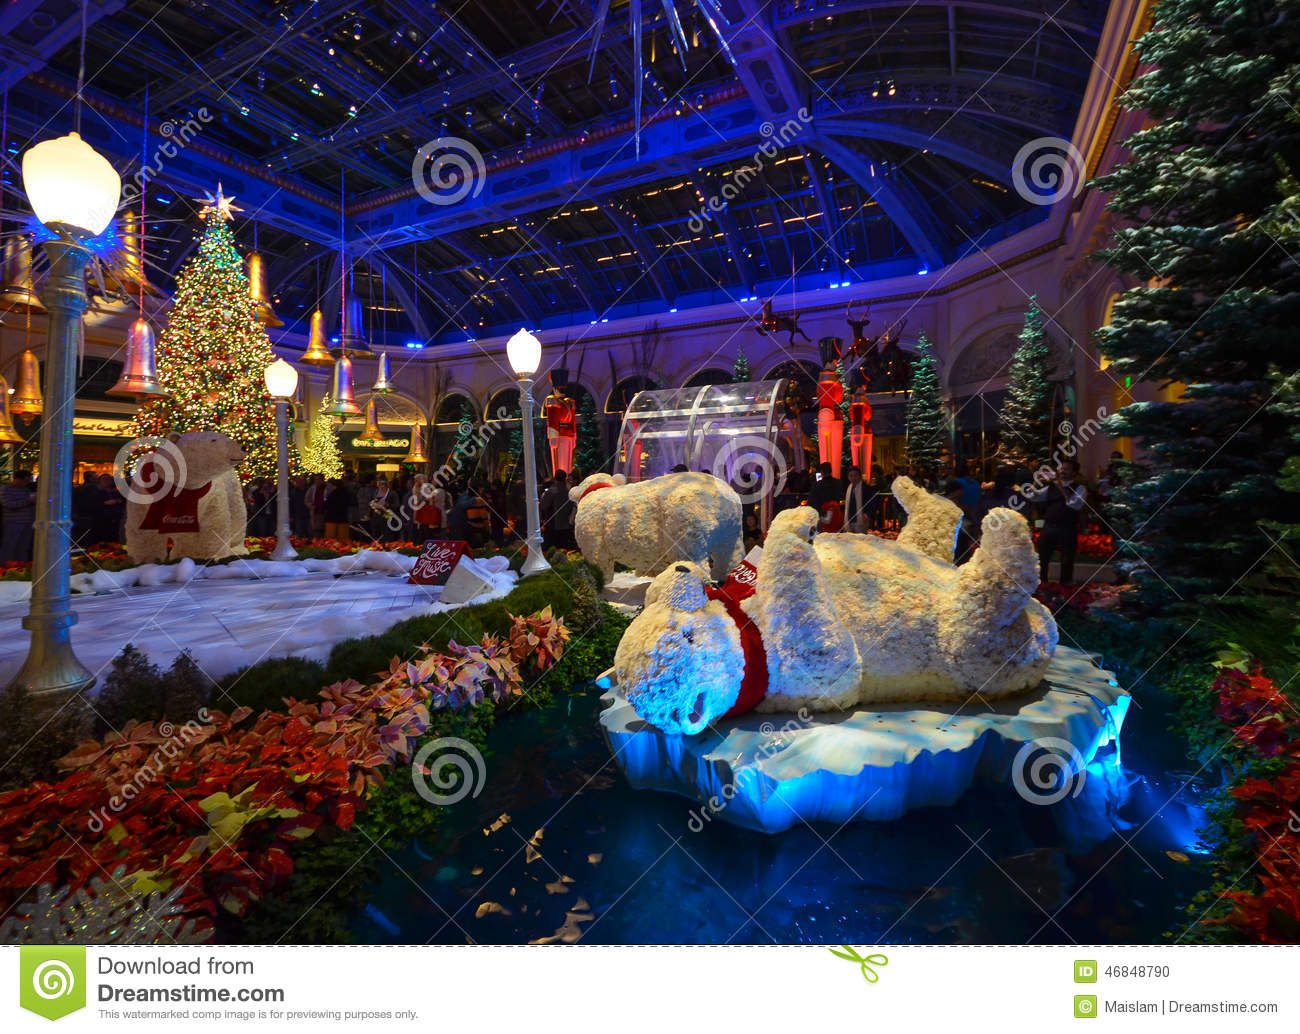 When Does Las Vegas Decorate For Christmas